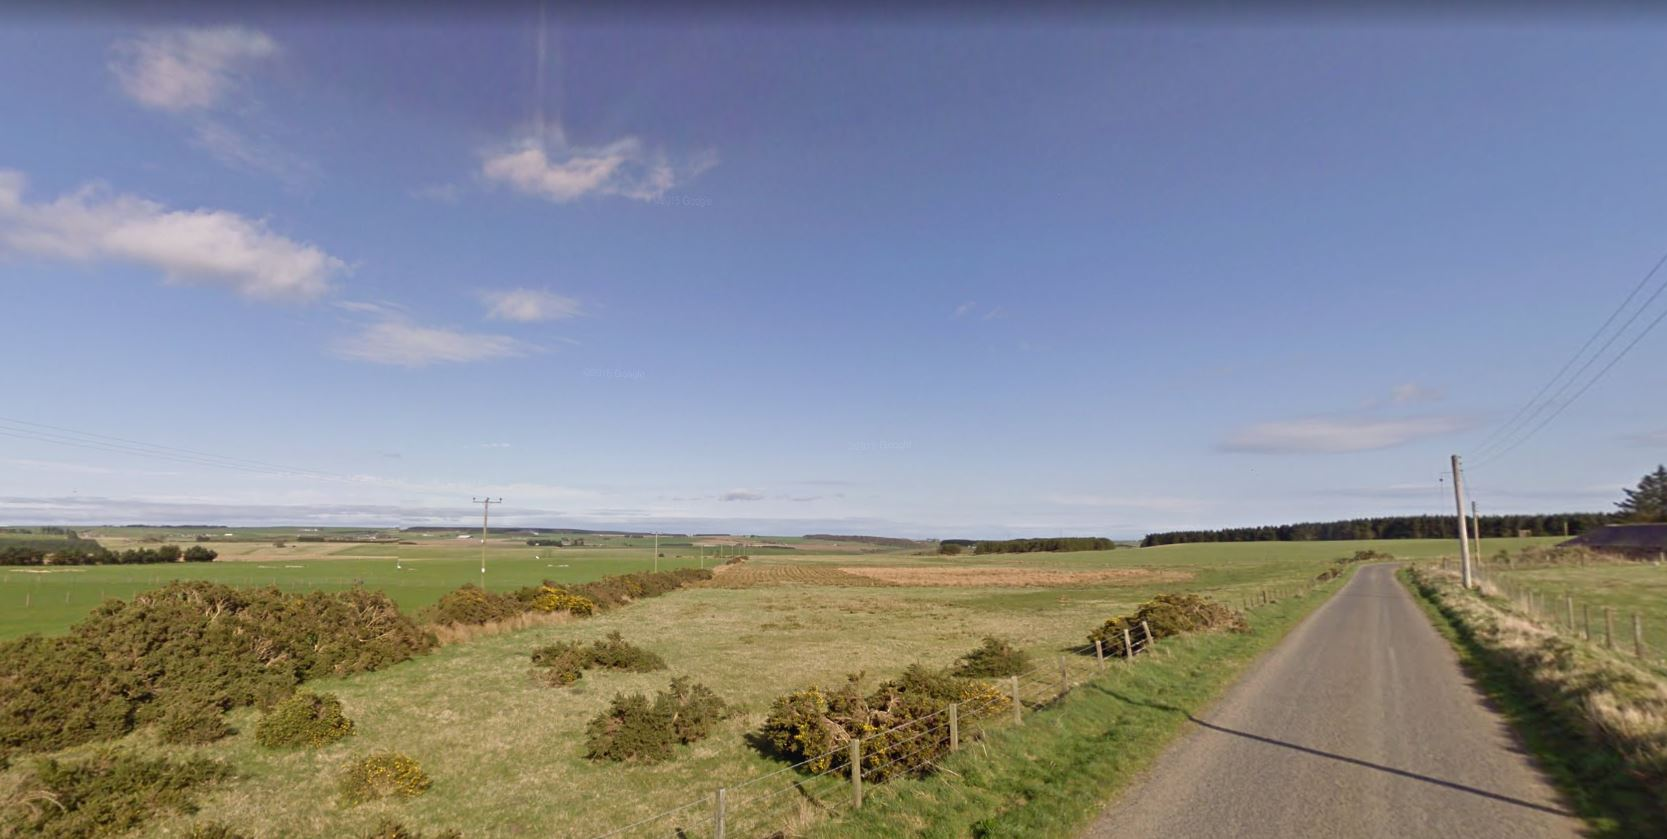 The Chap Group submitted proposals to Aberdeenshire Council for a mineral extraction site at Muirtack